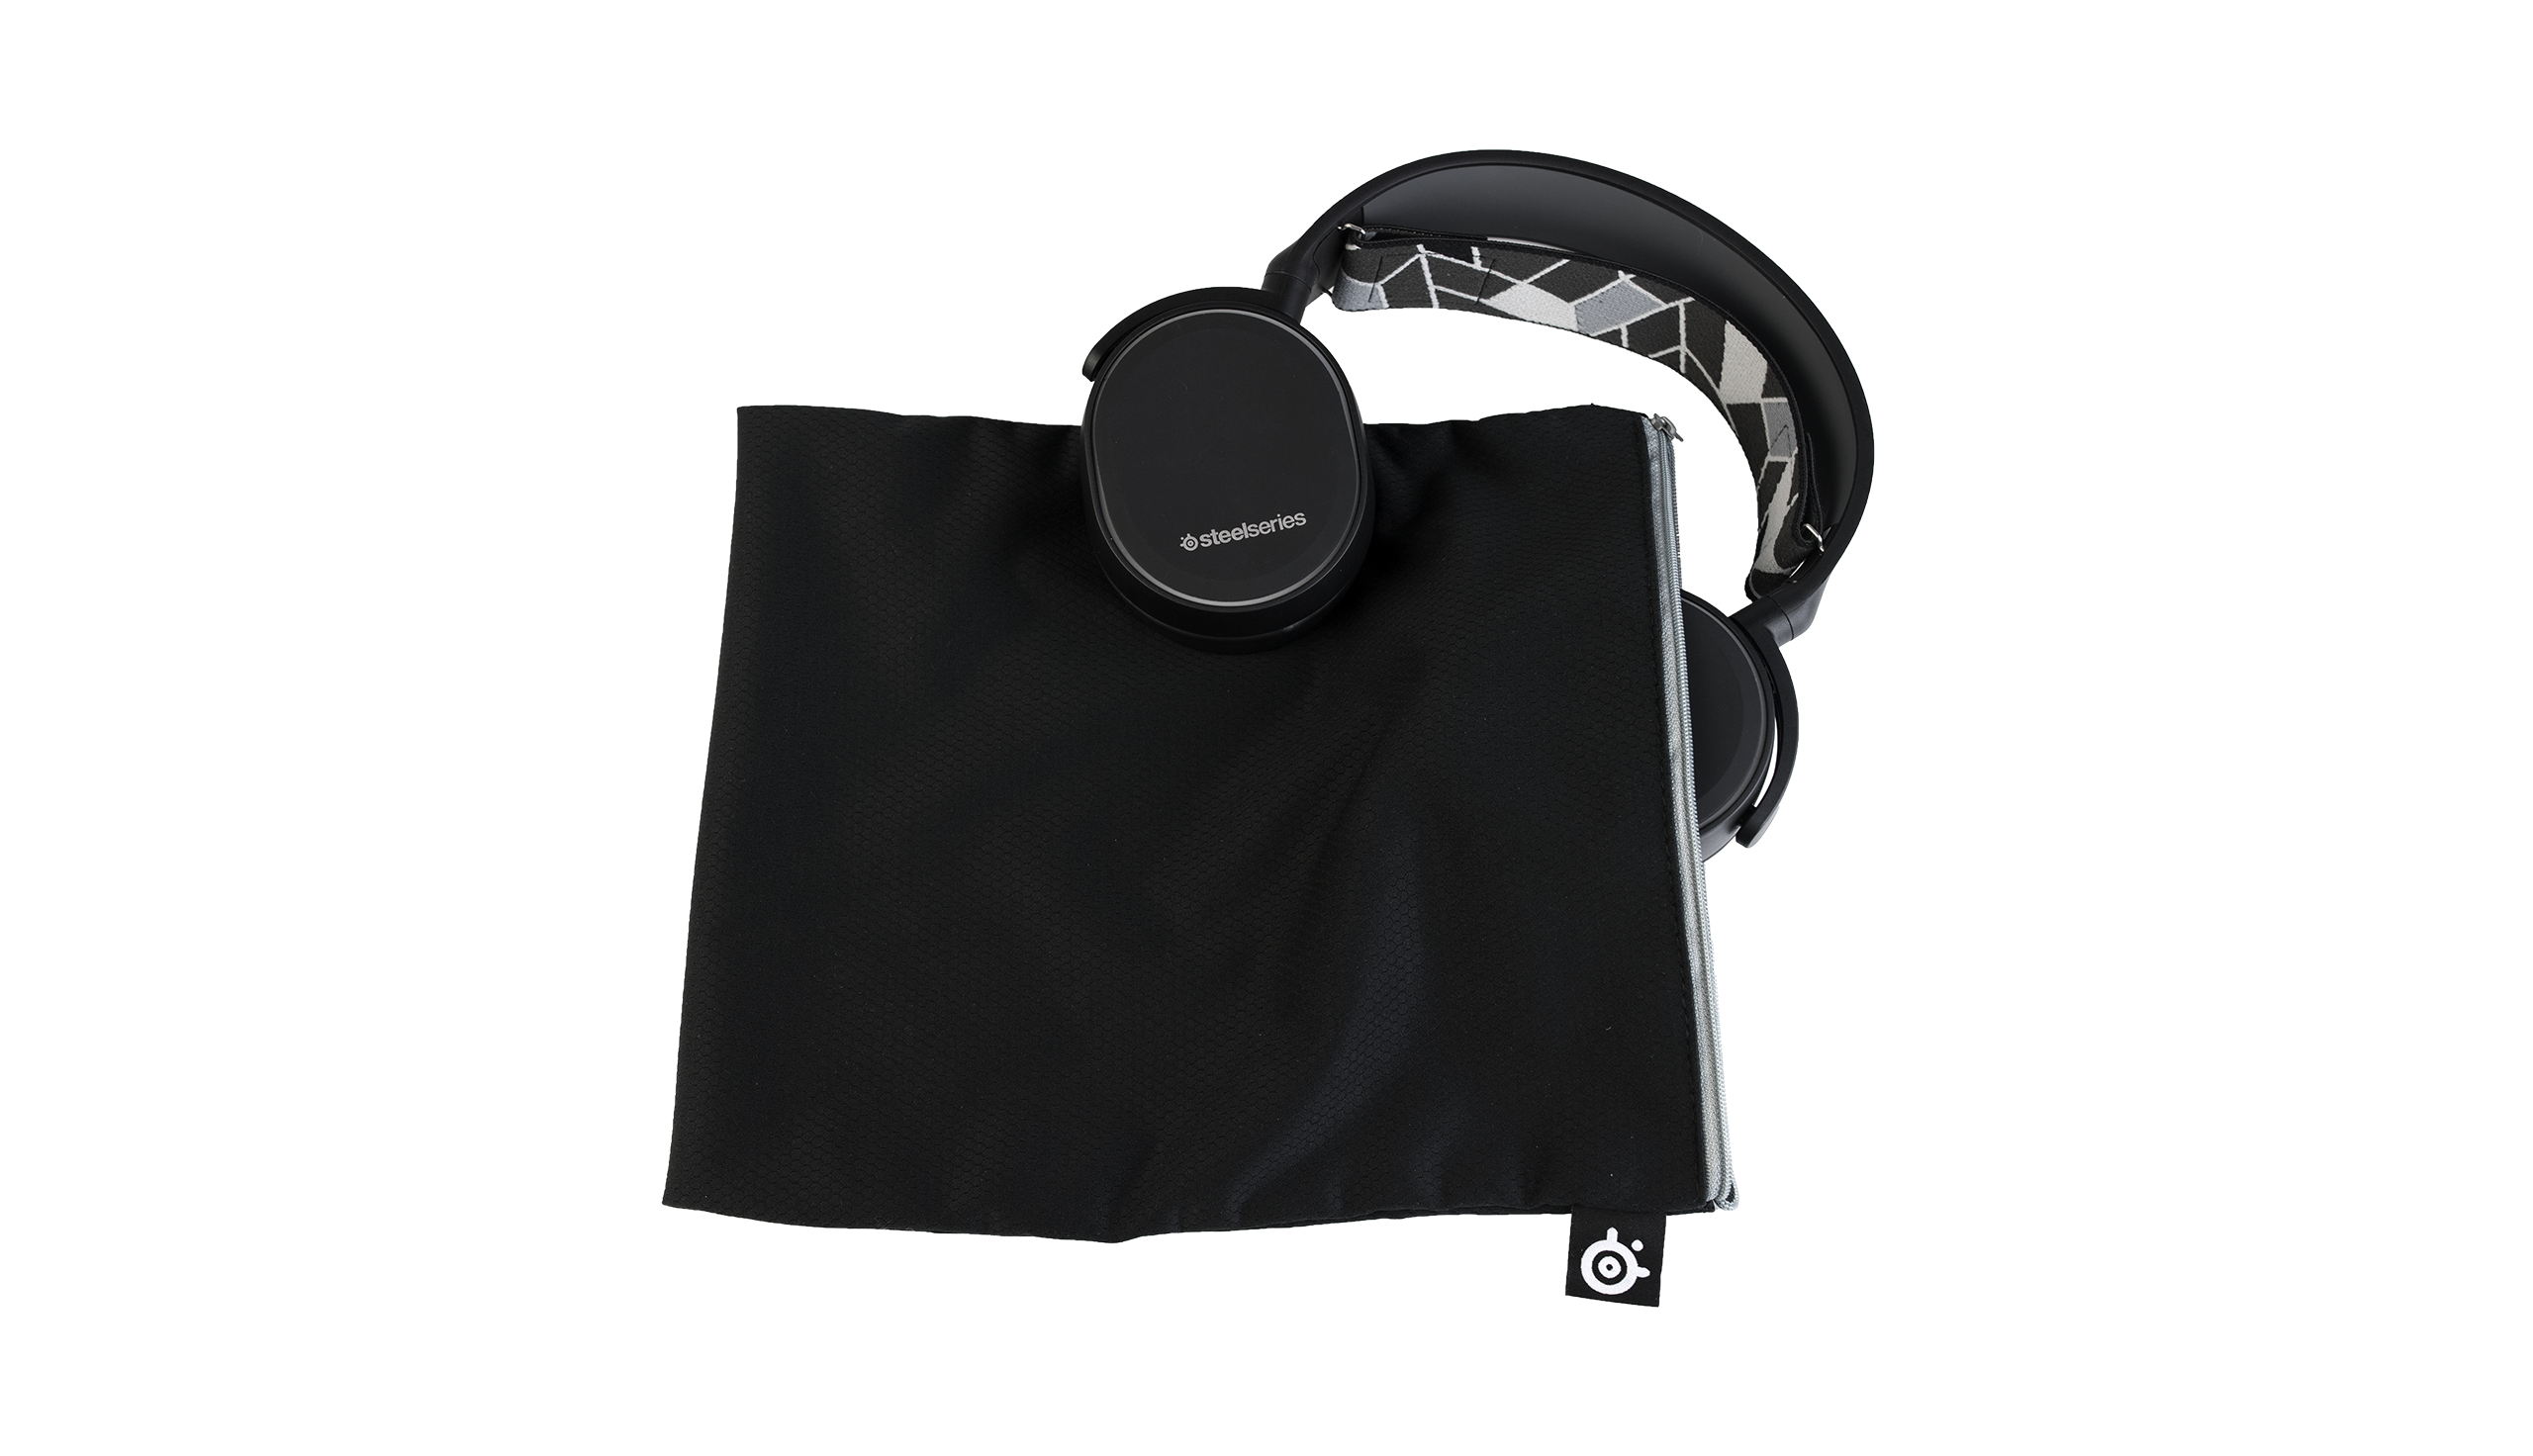 arctis wireless gaming headset dts surround steelseries carrying bag for all arctis headsets